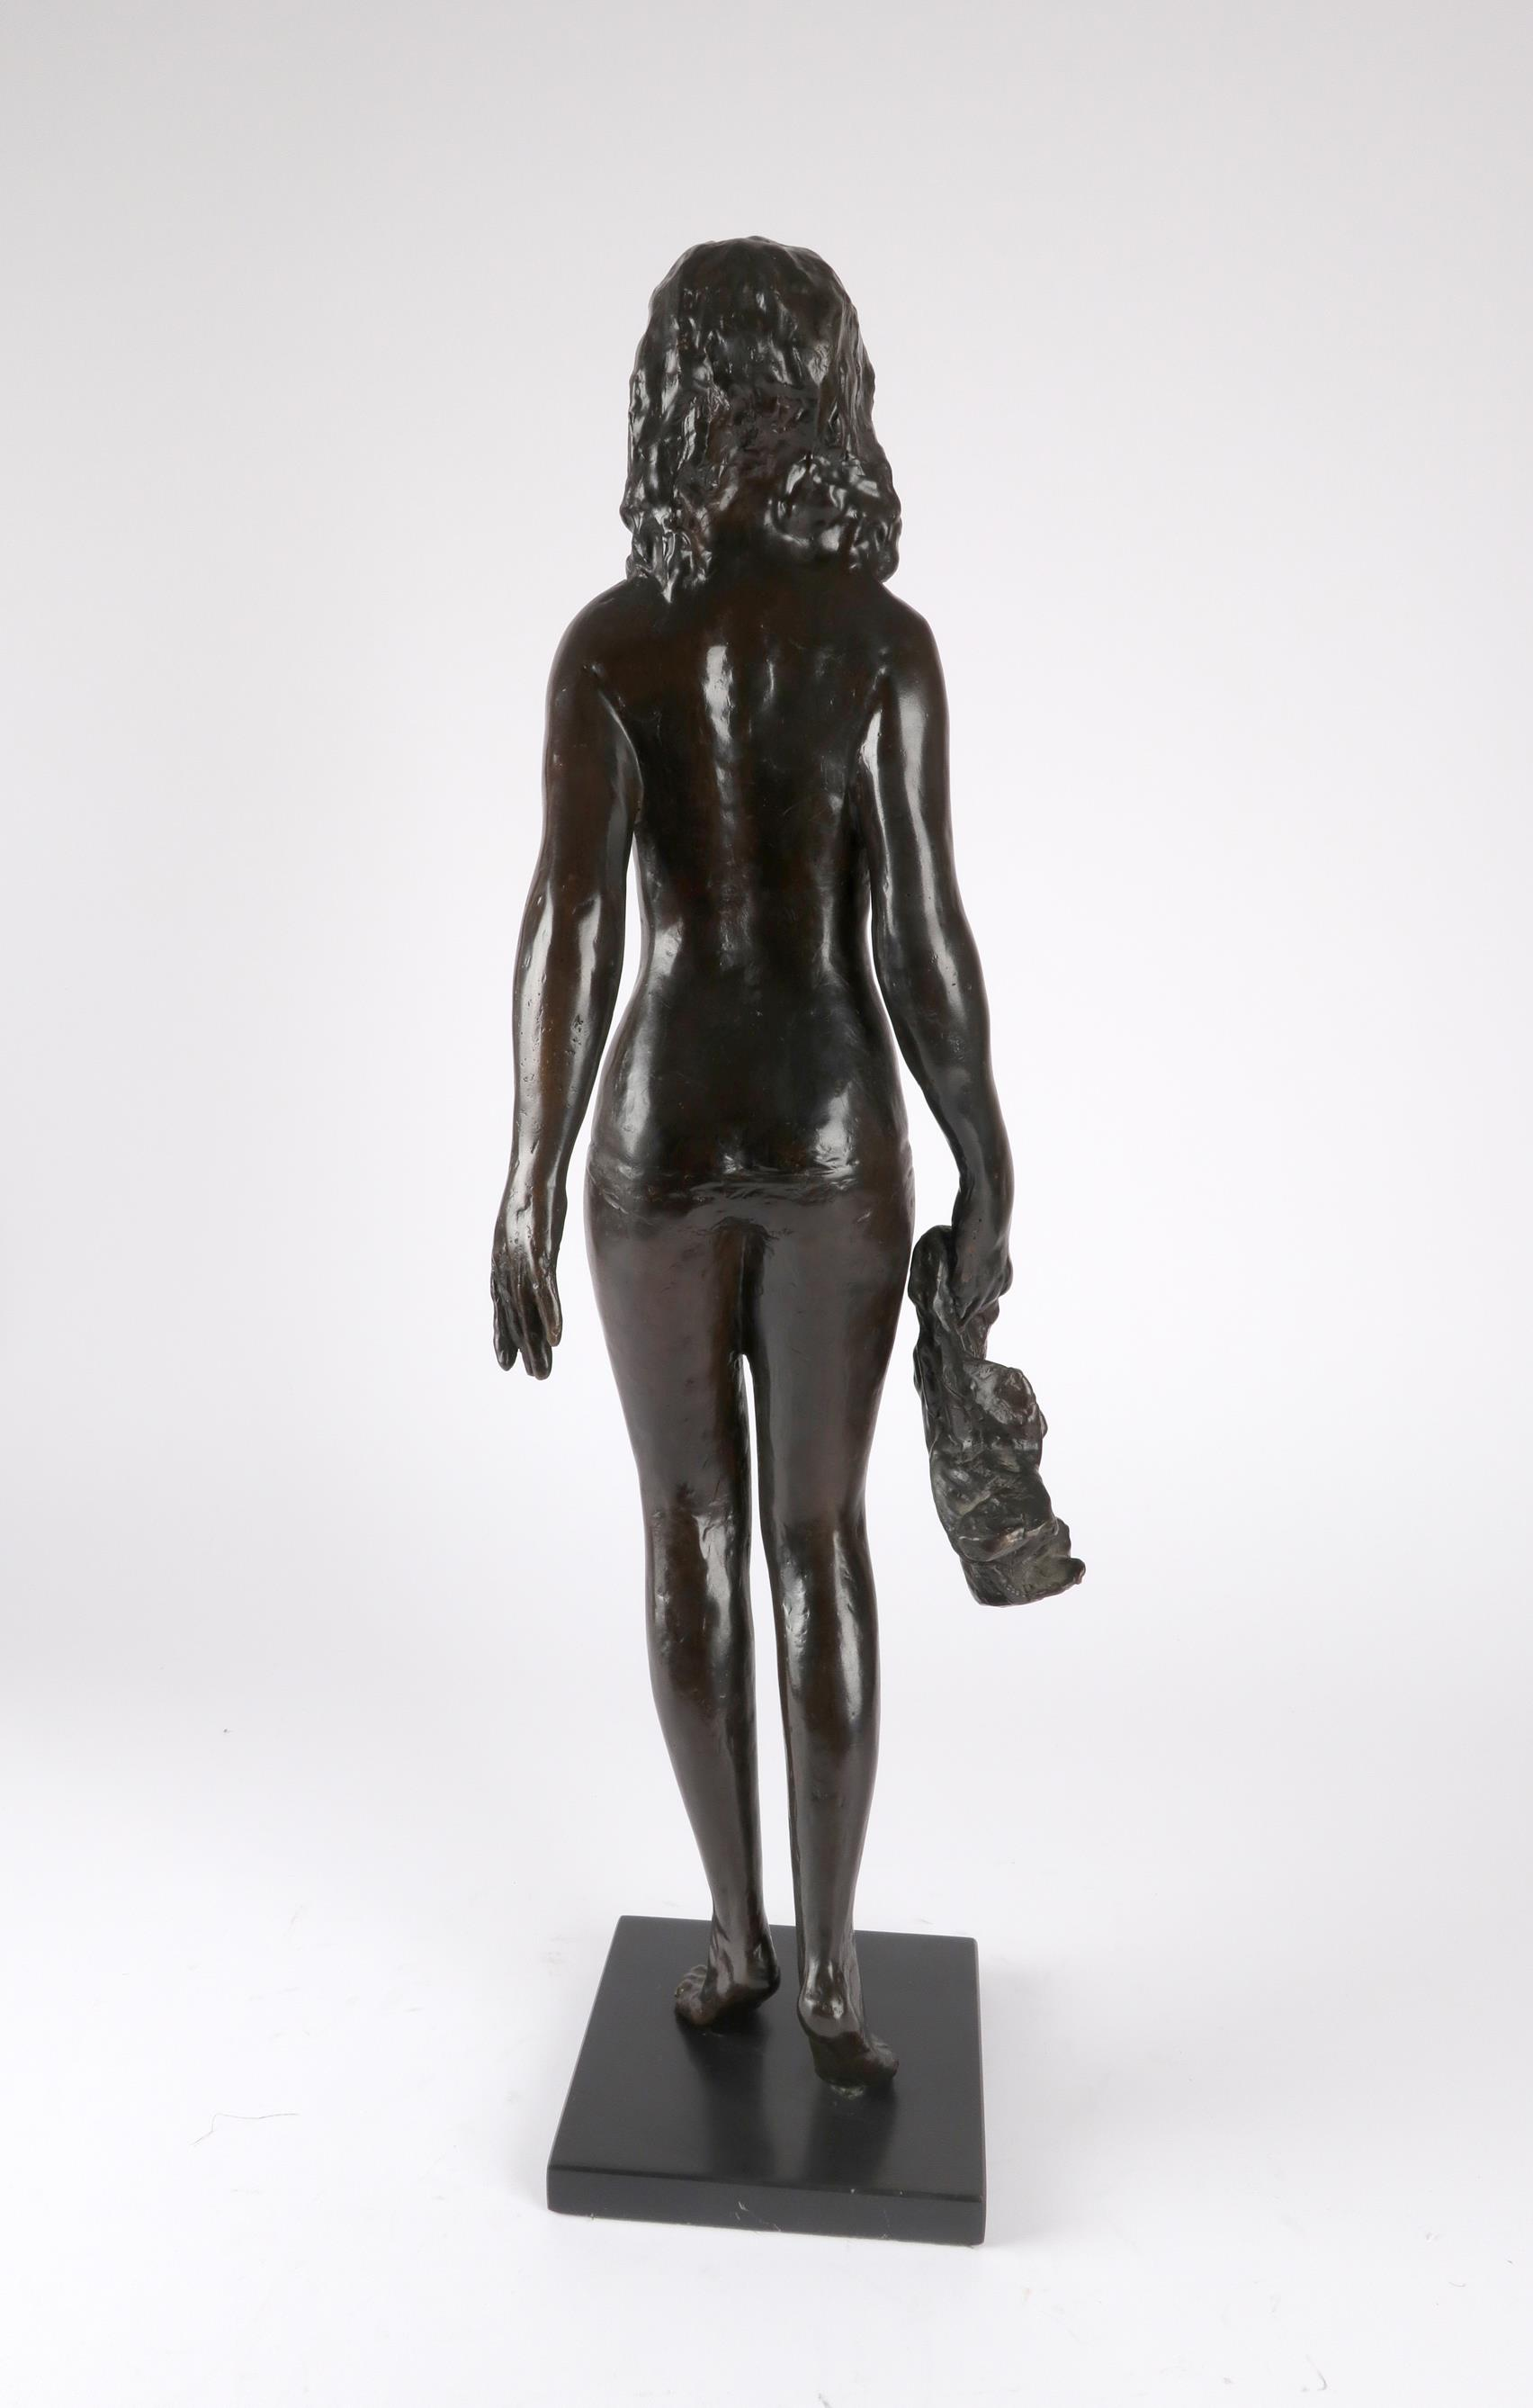 ‡Sydney Harpley RA, FRBS (1927-1992) Towel girl Signed and numbered Harpley/2/9 (to towel) Bronze on - Image 3 of 4